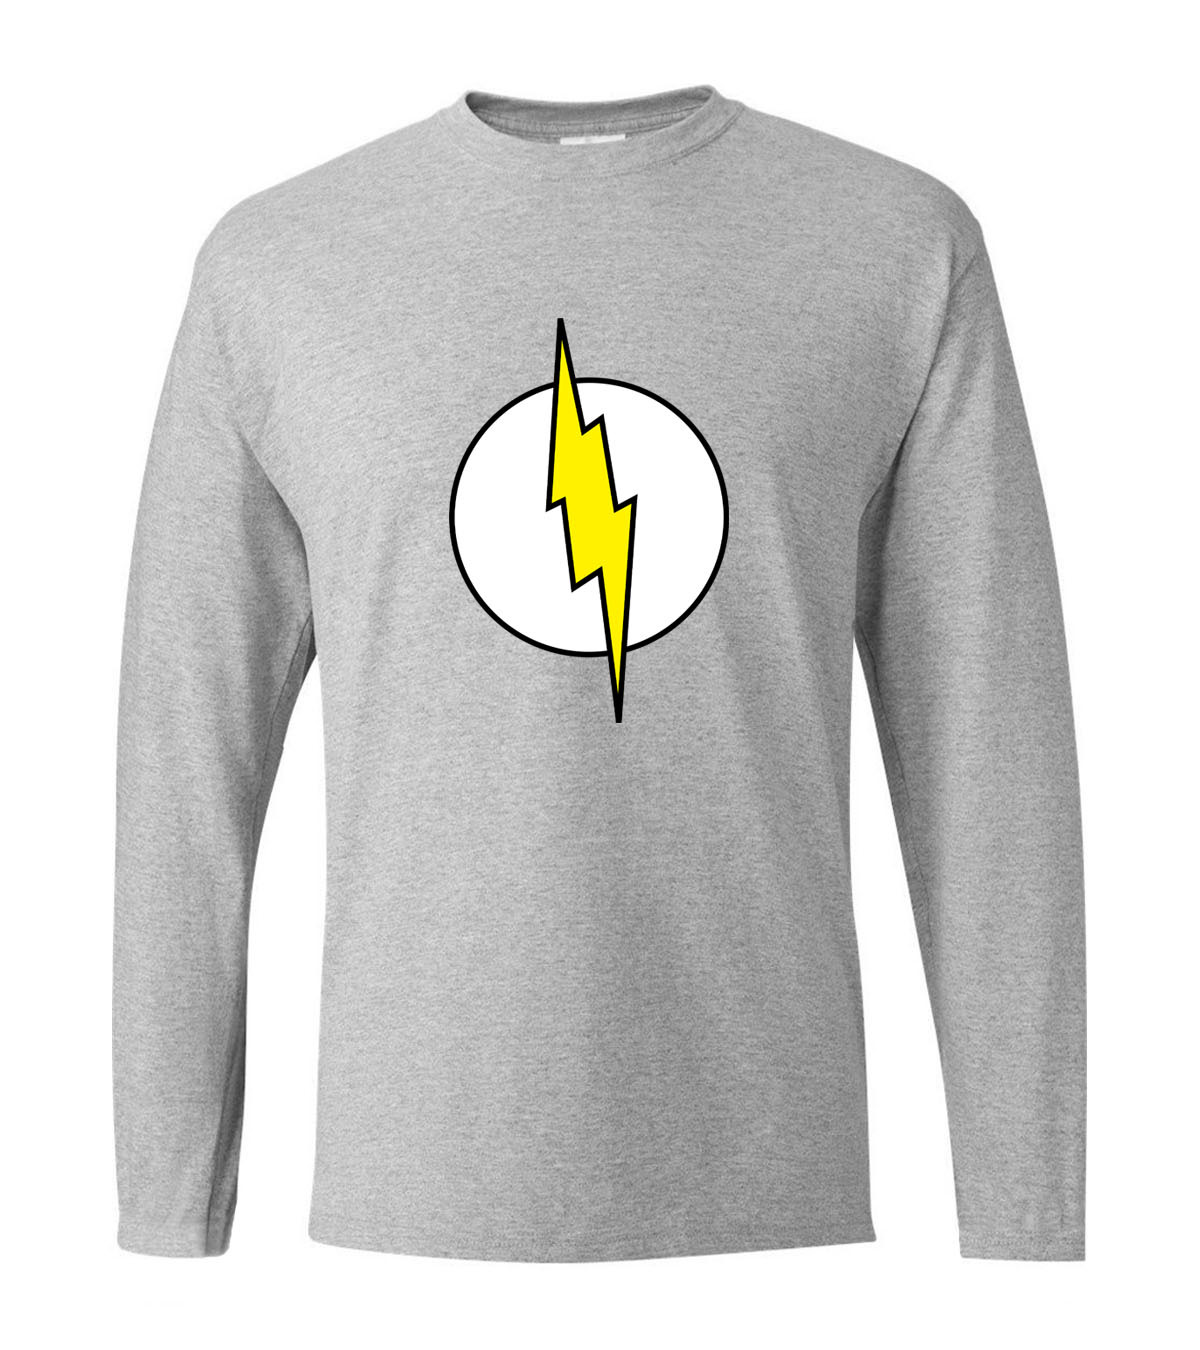 Superman Series T-shirts Sheldon Cooper The Flash men's long sleeve t shirt 2019 spring 100% cotton fitness man tshirt for fans